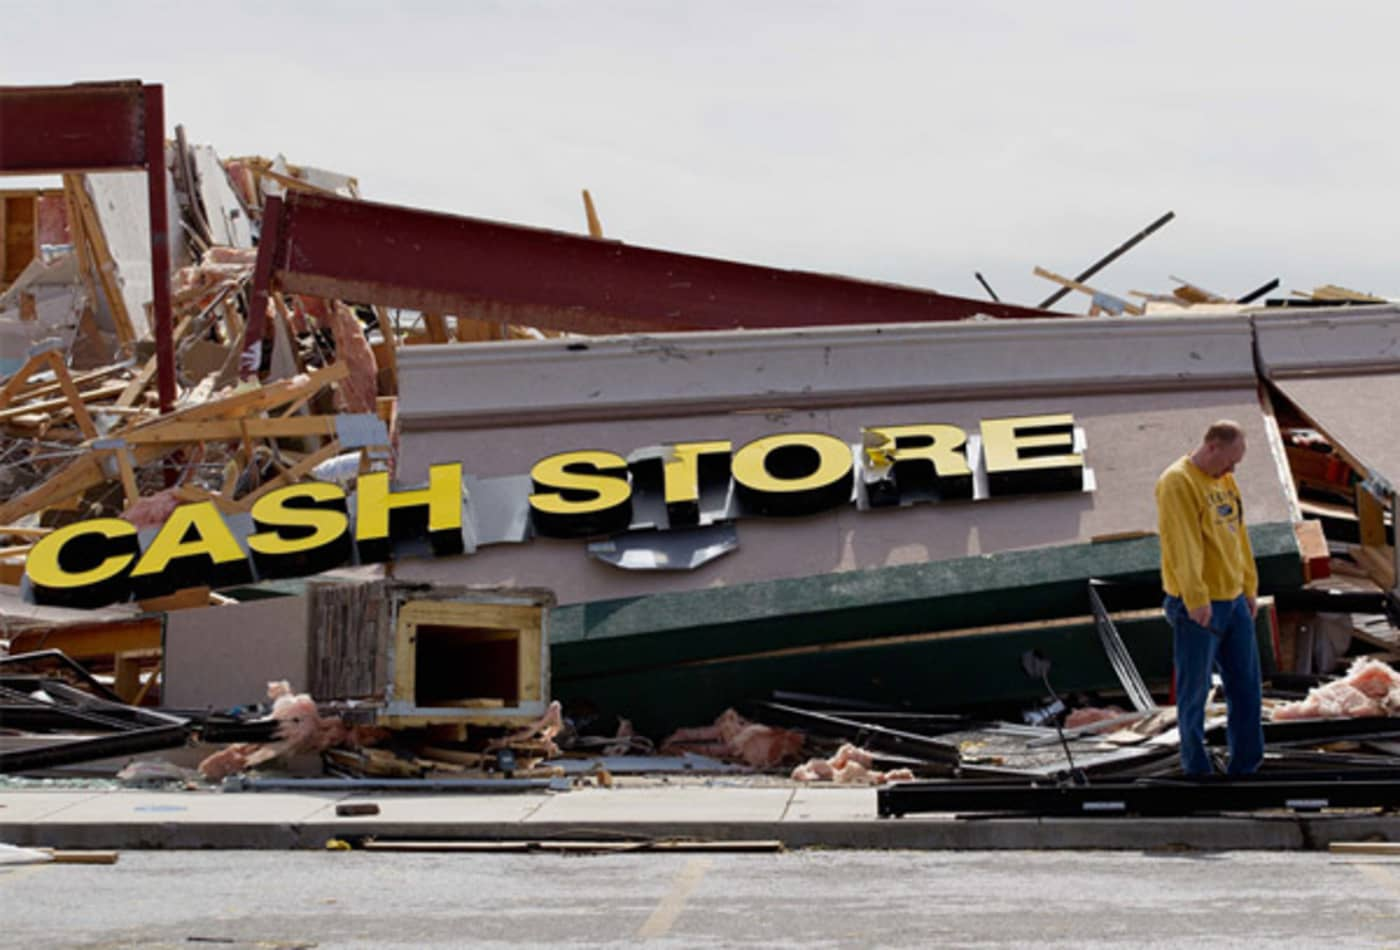 scenes-from-the-midwest-tornadoes-cash-store.jpg